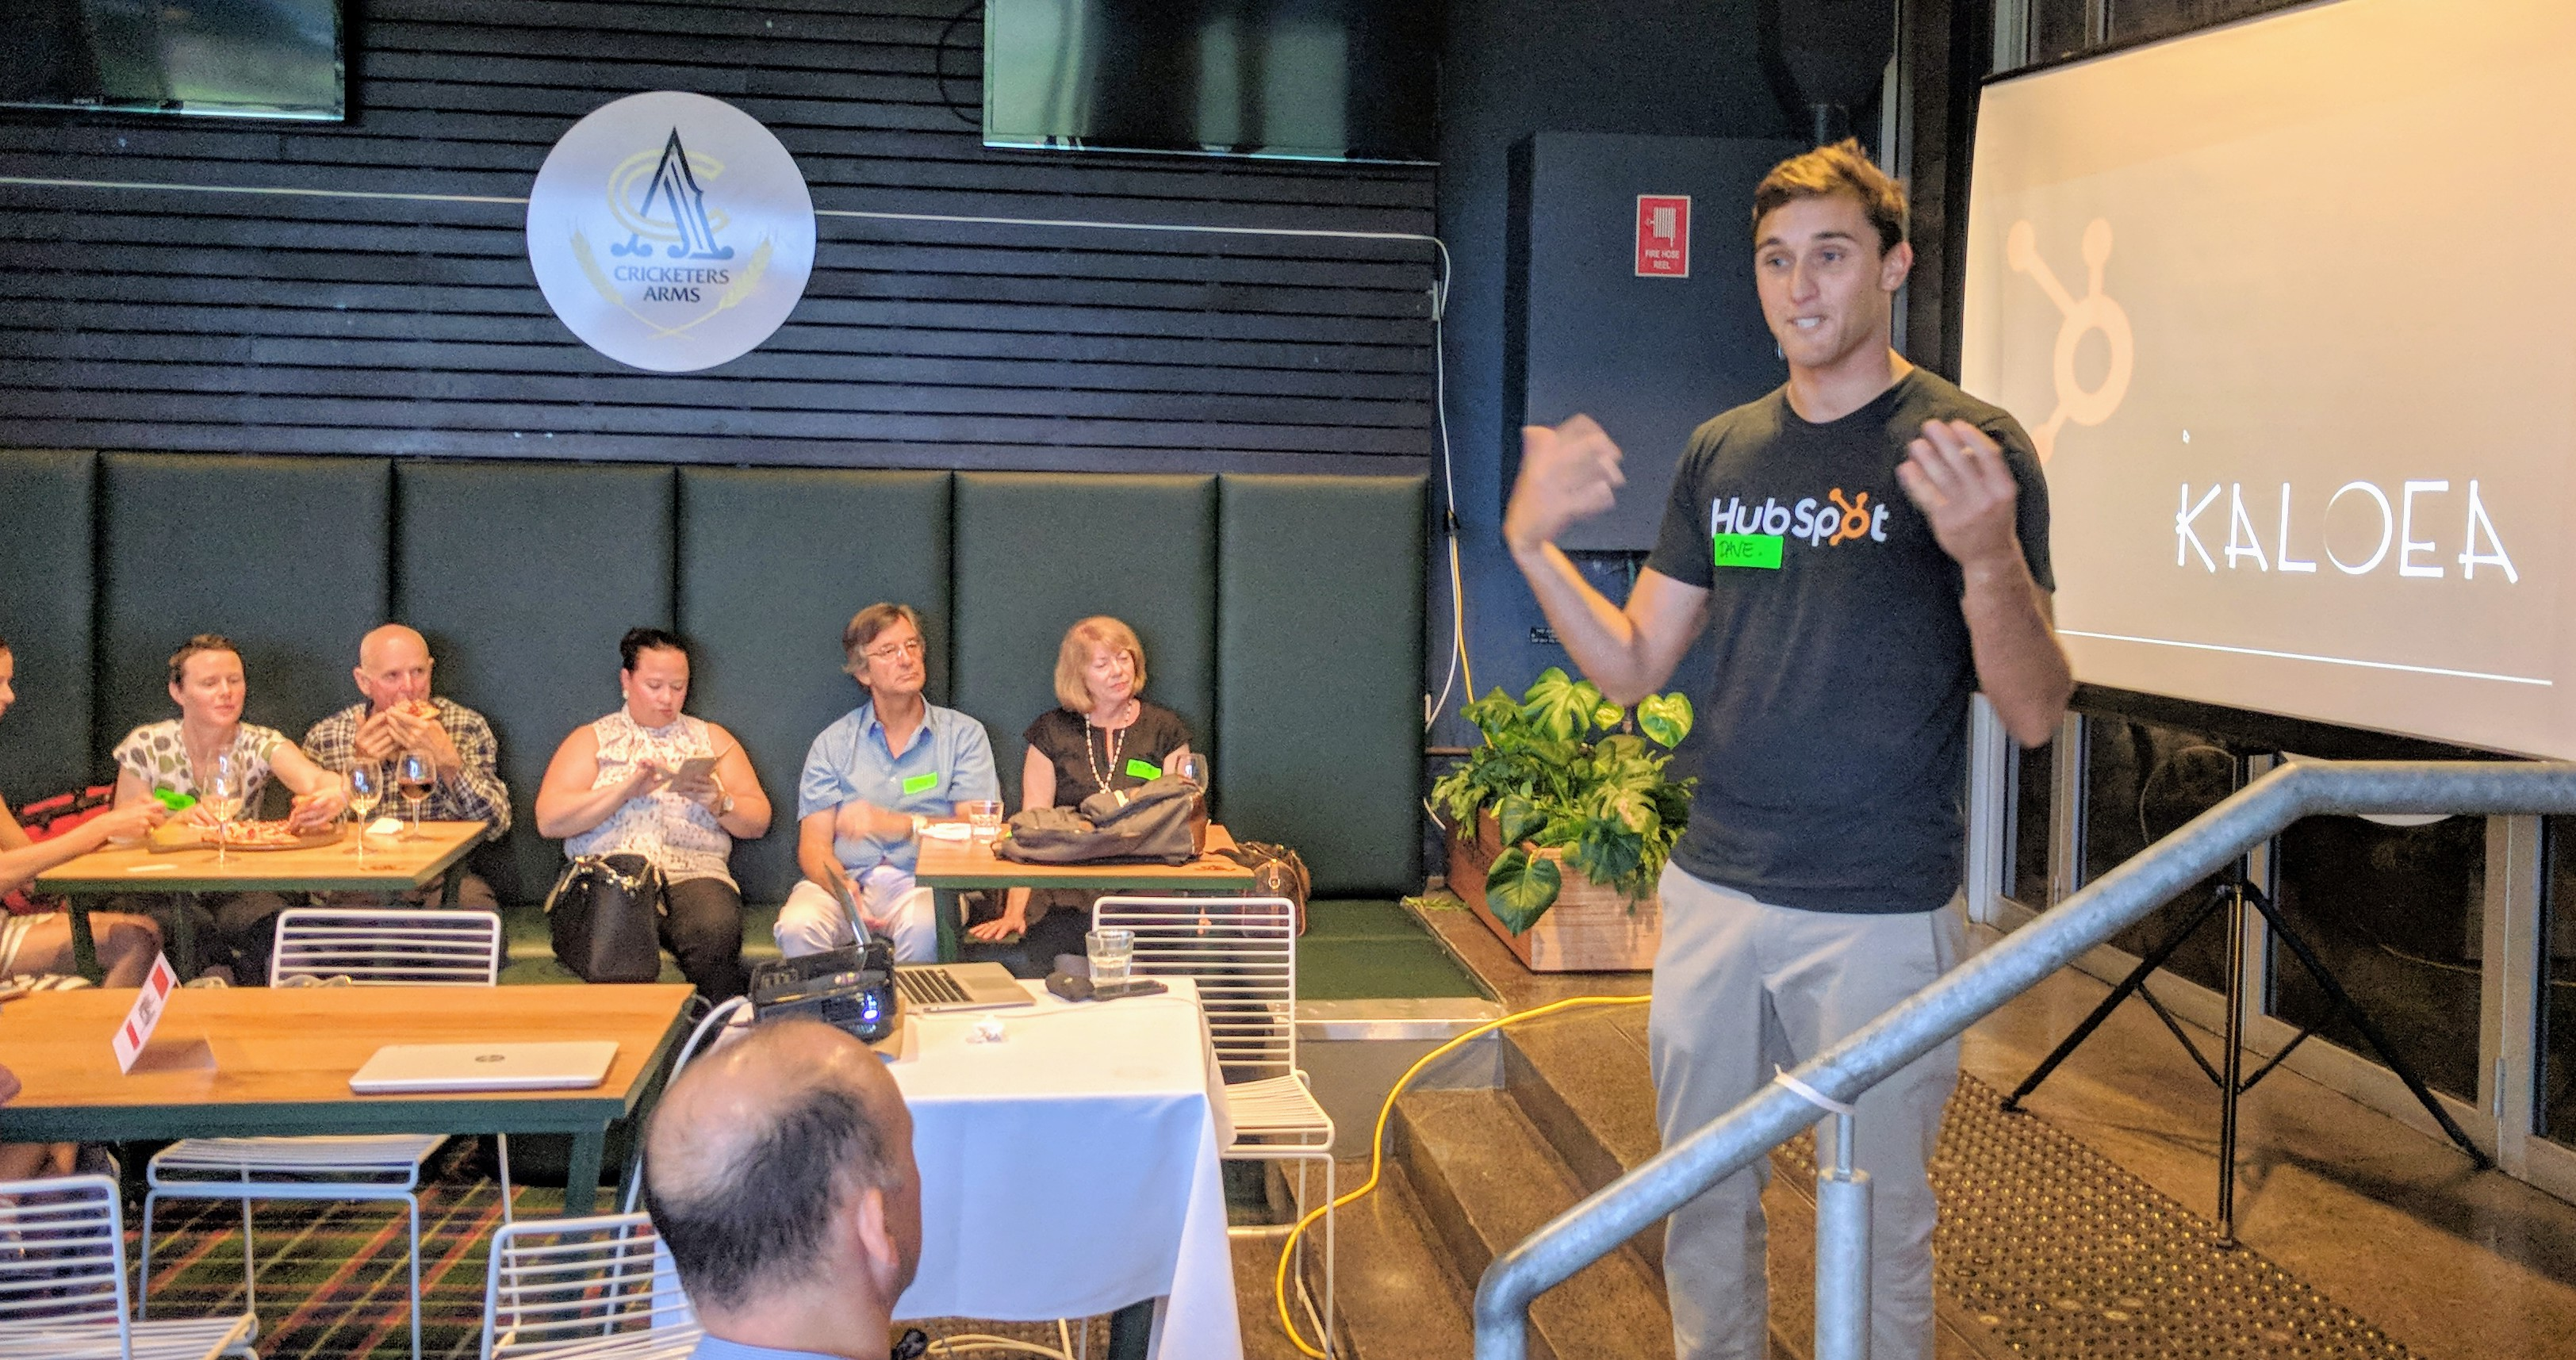 inbound-brisbane-meetup-photo5.jpg